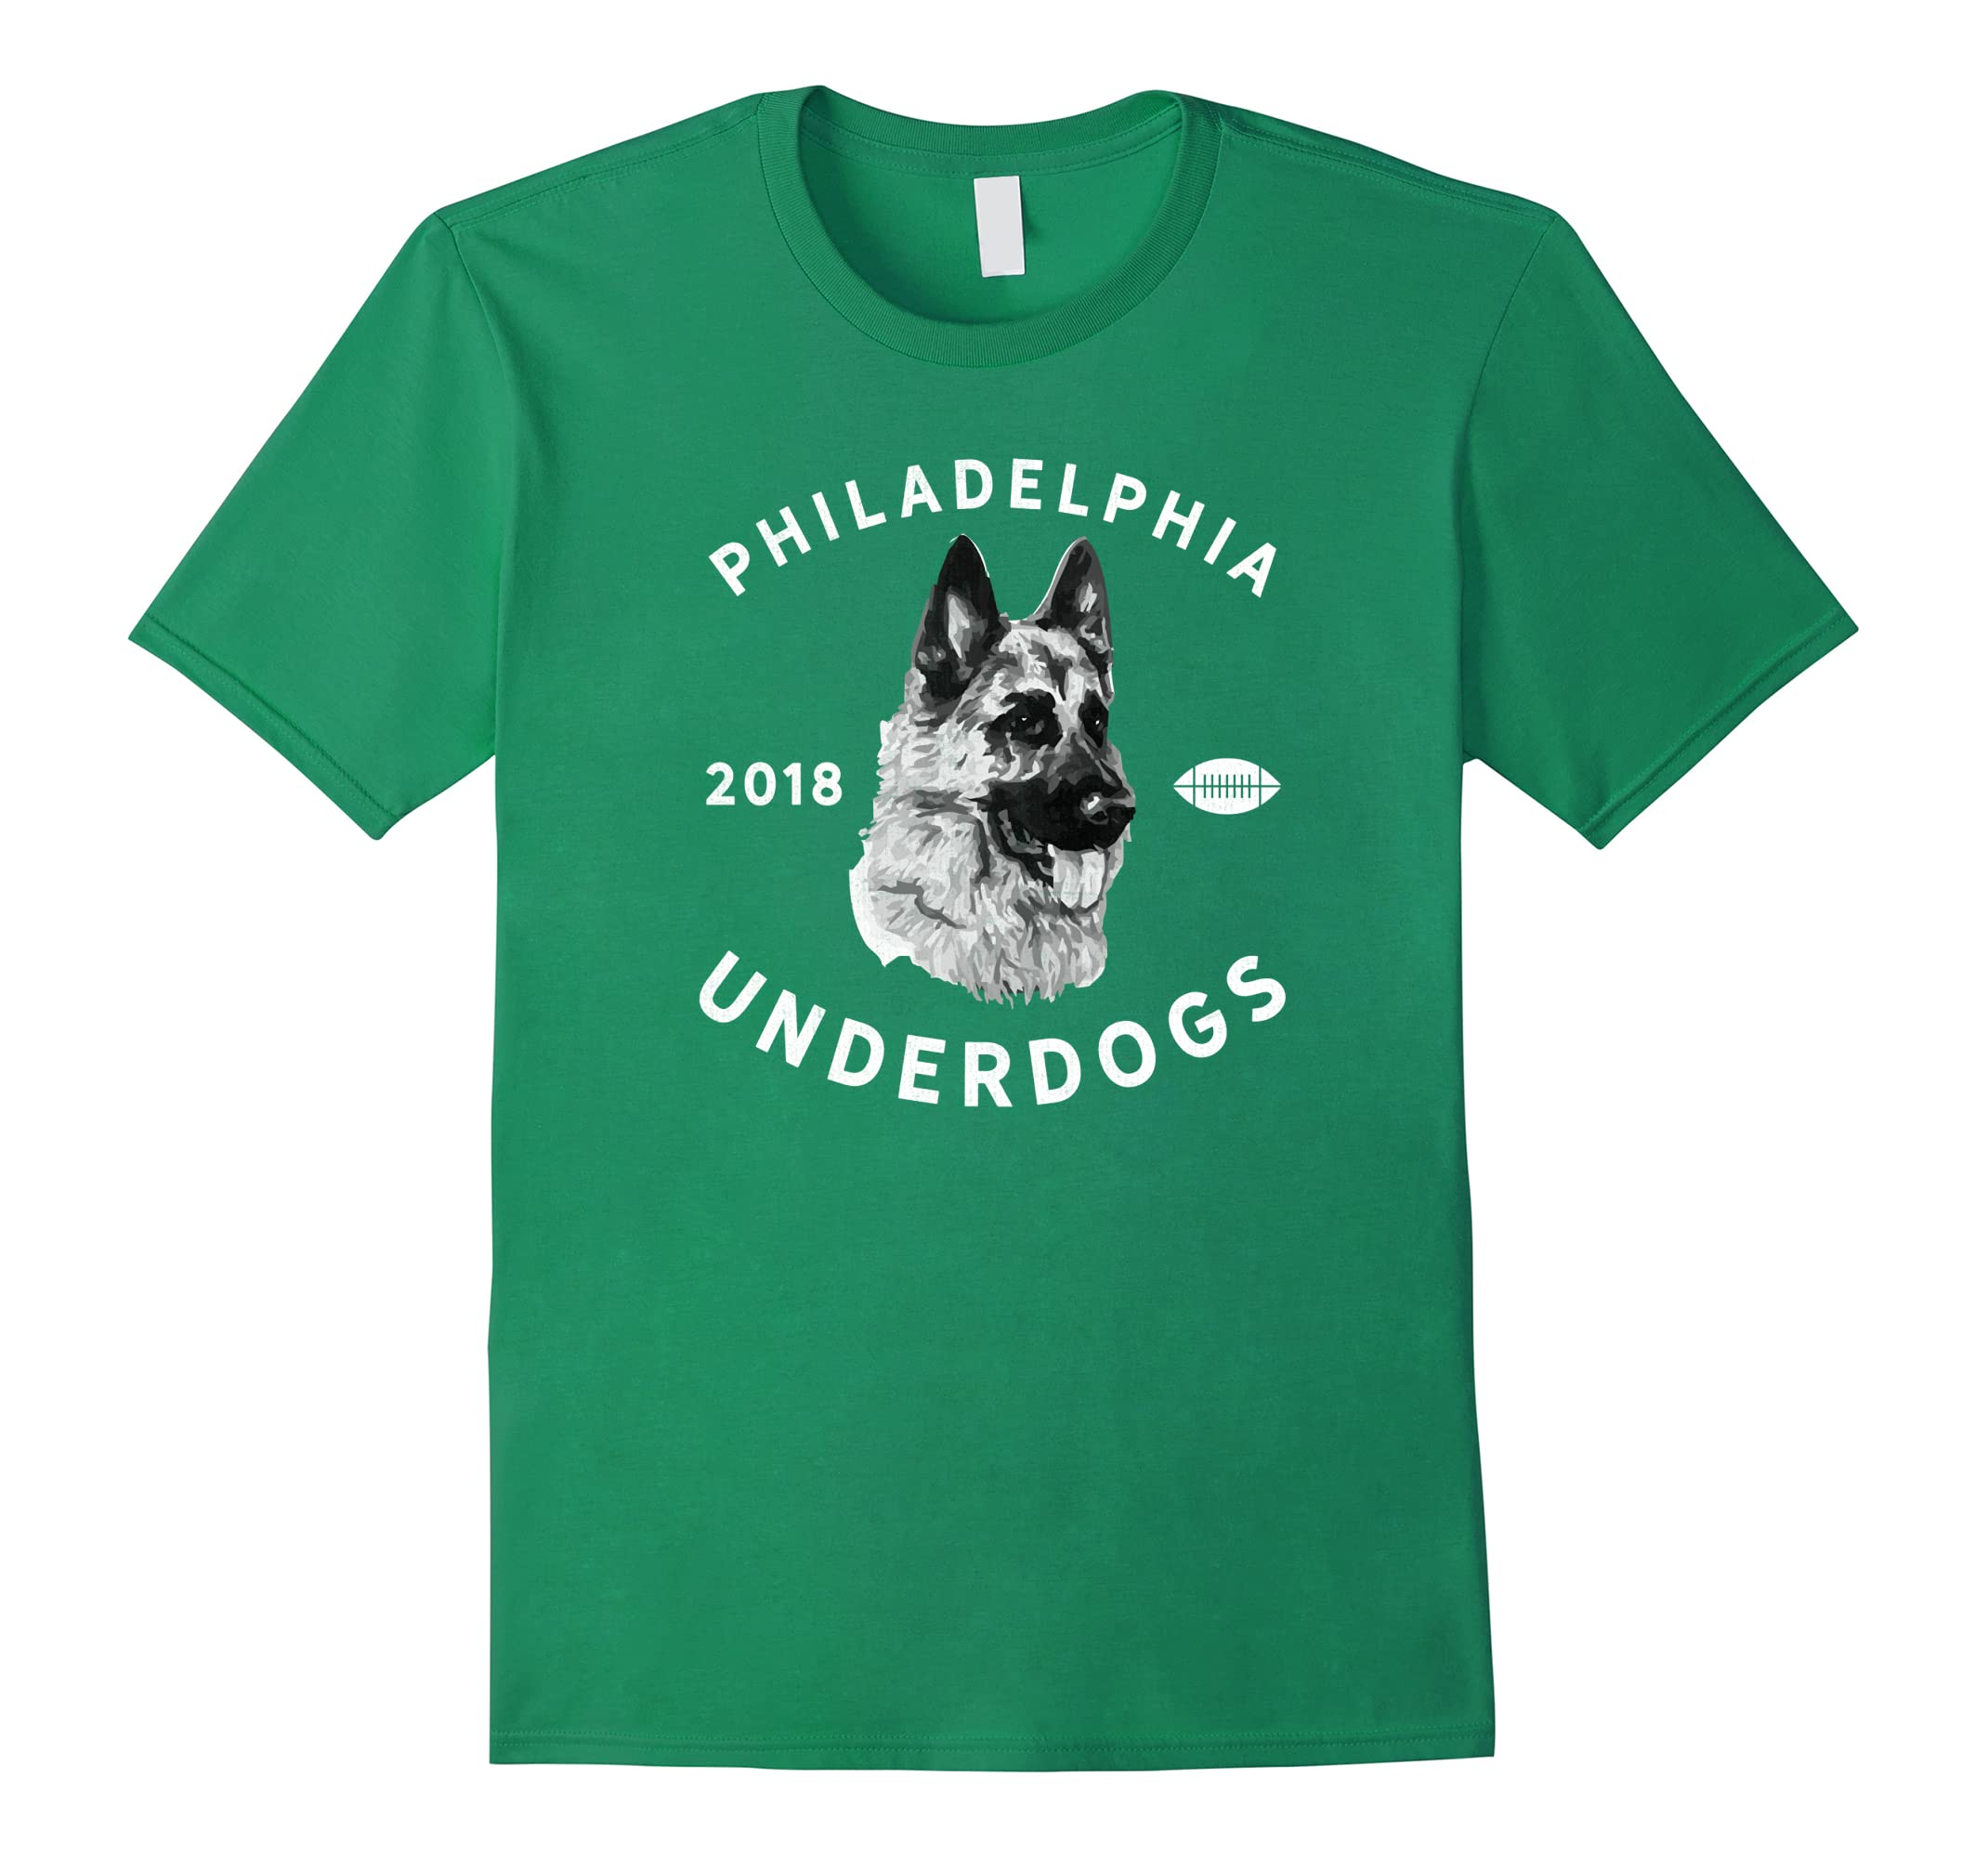 Distressed Novelty Philadelphia Underdogs Game Day T-Shirt-ah my shirt one gift